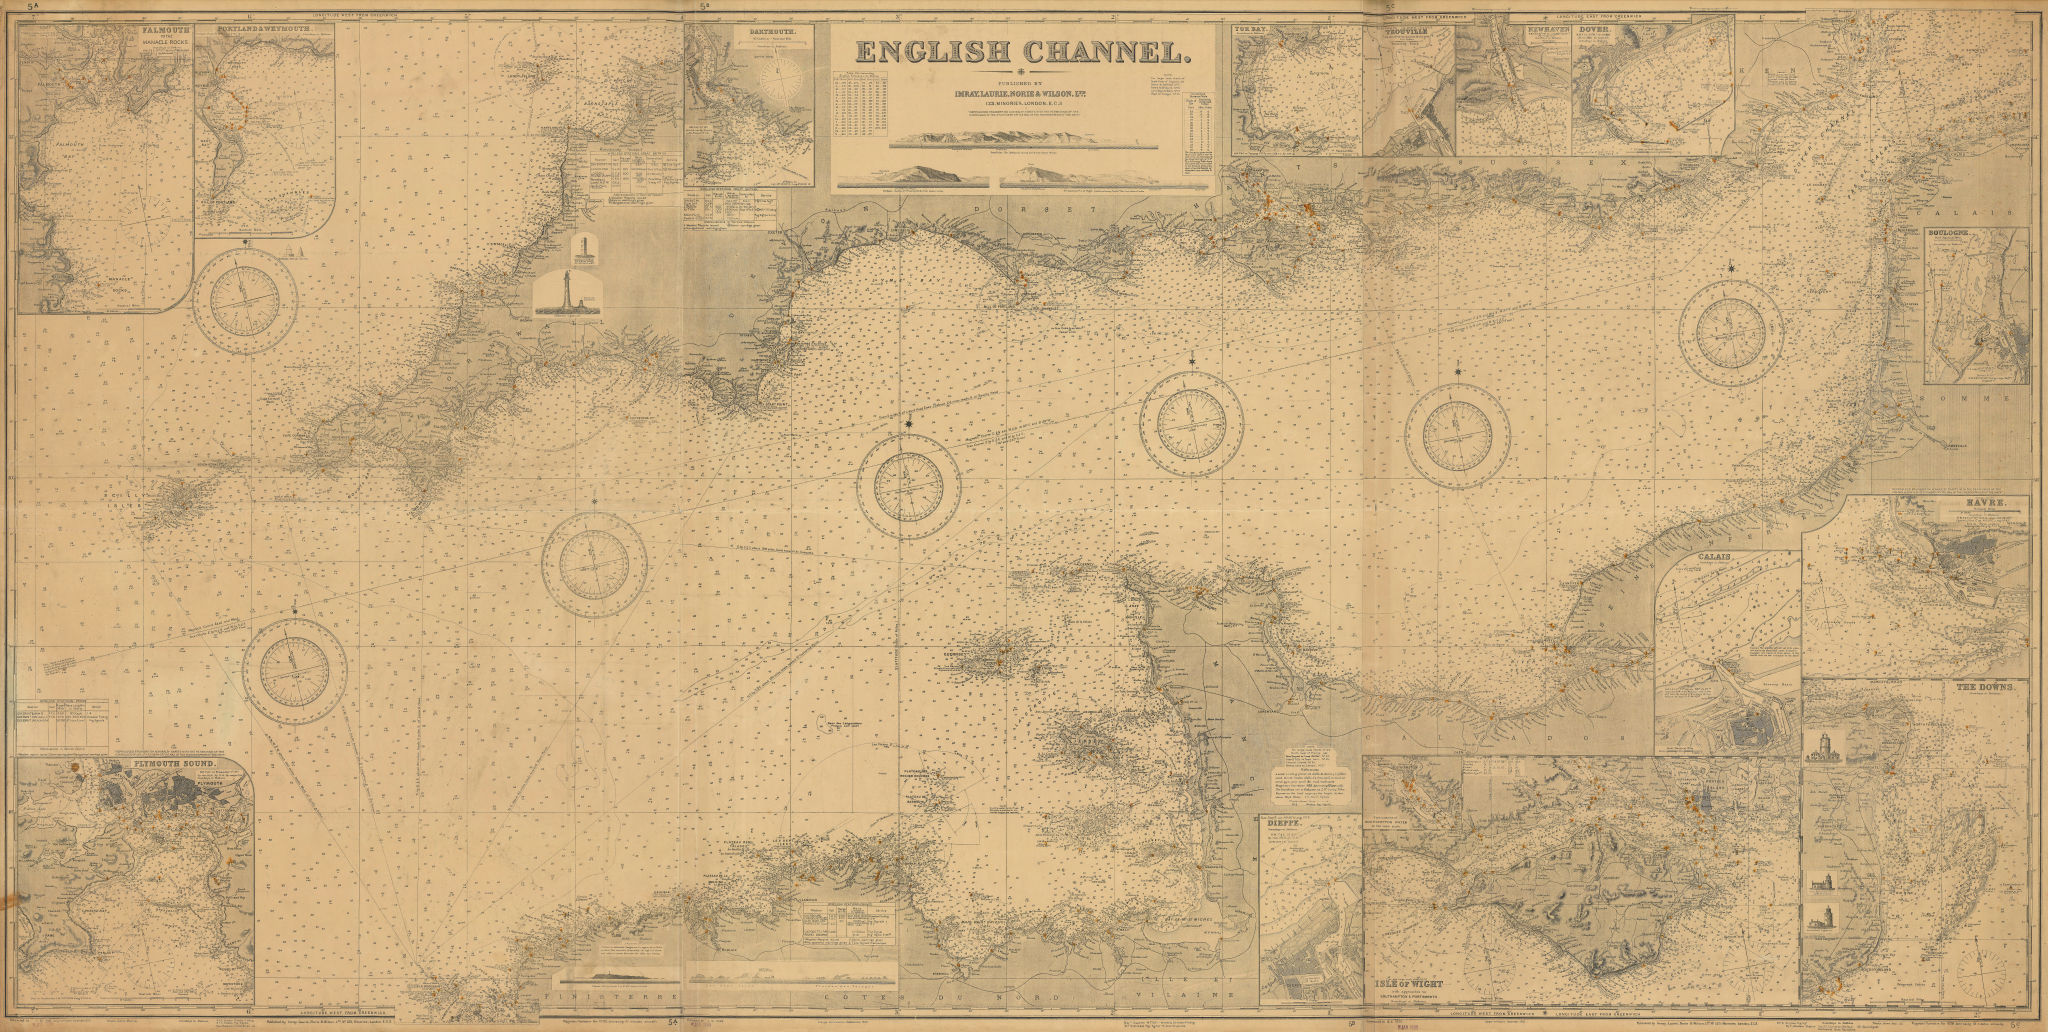 English Channel 105x210cm. Imray Laurie Norie & Wilson sea chart 1939 (1939) map